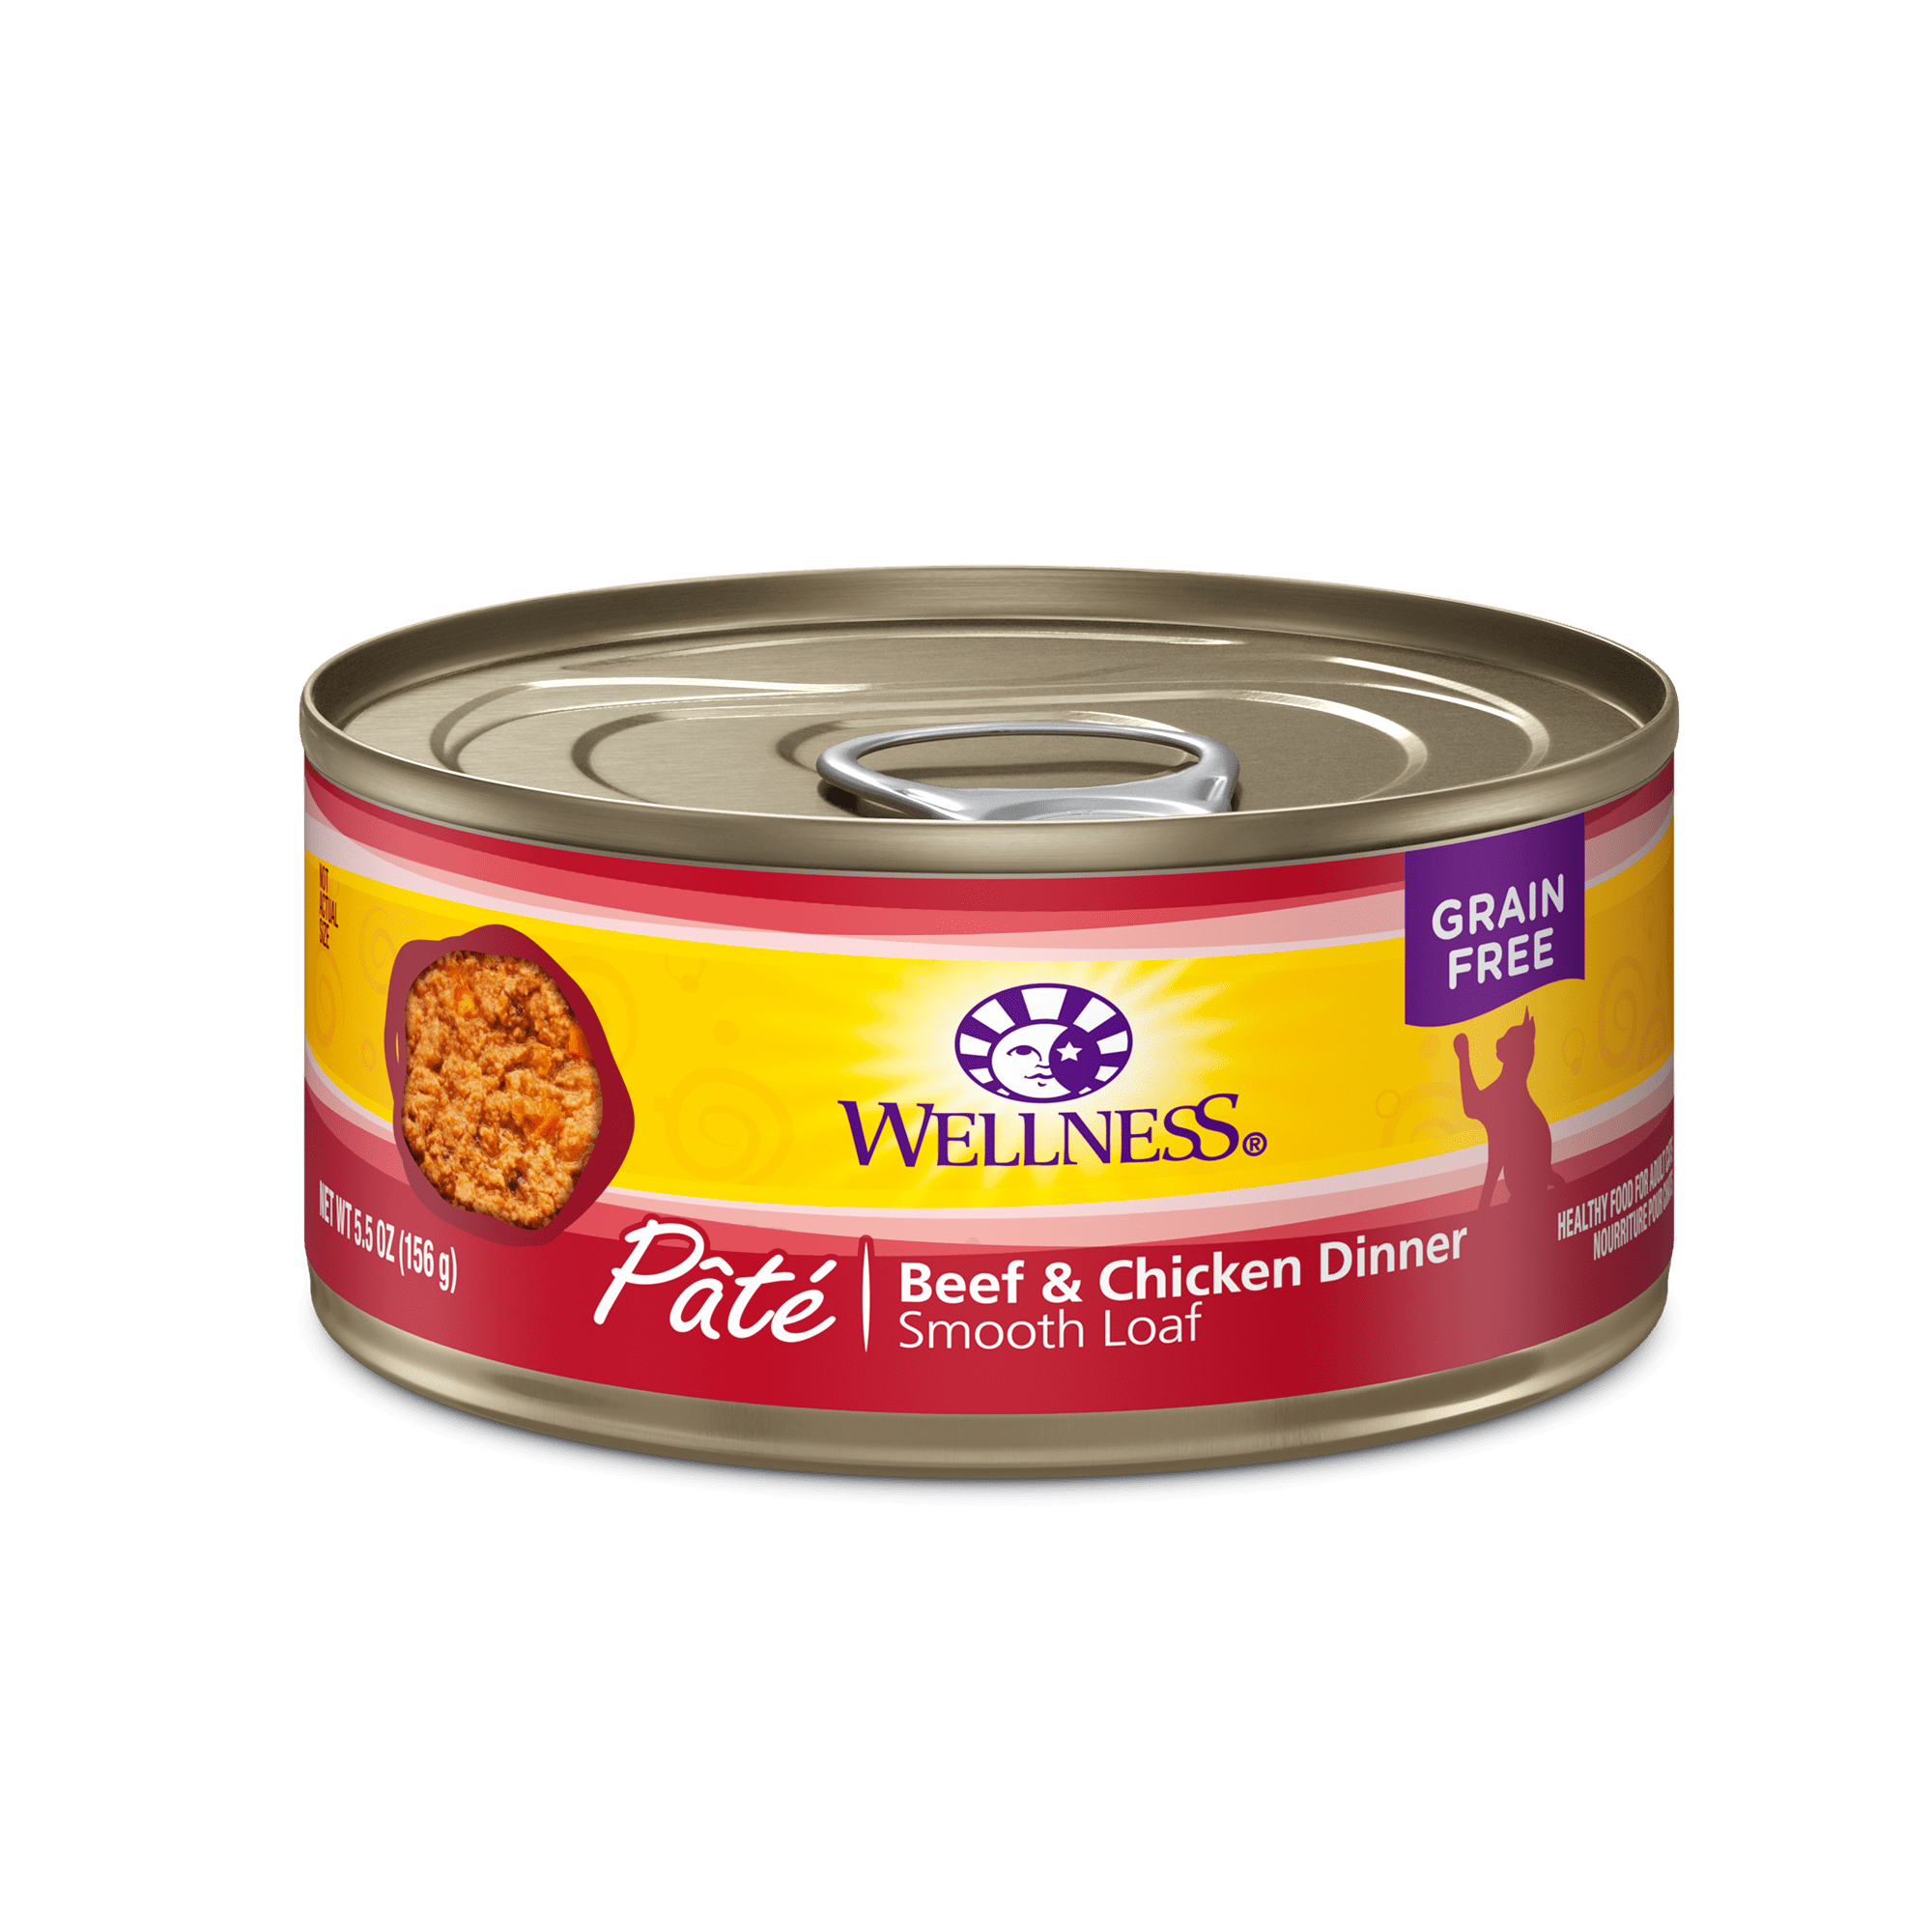 Wellness Canned Cat Food Ingredients